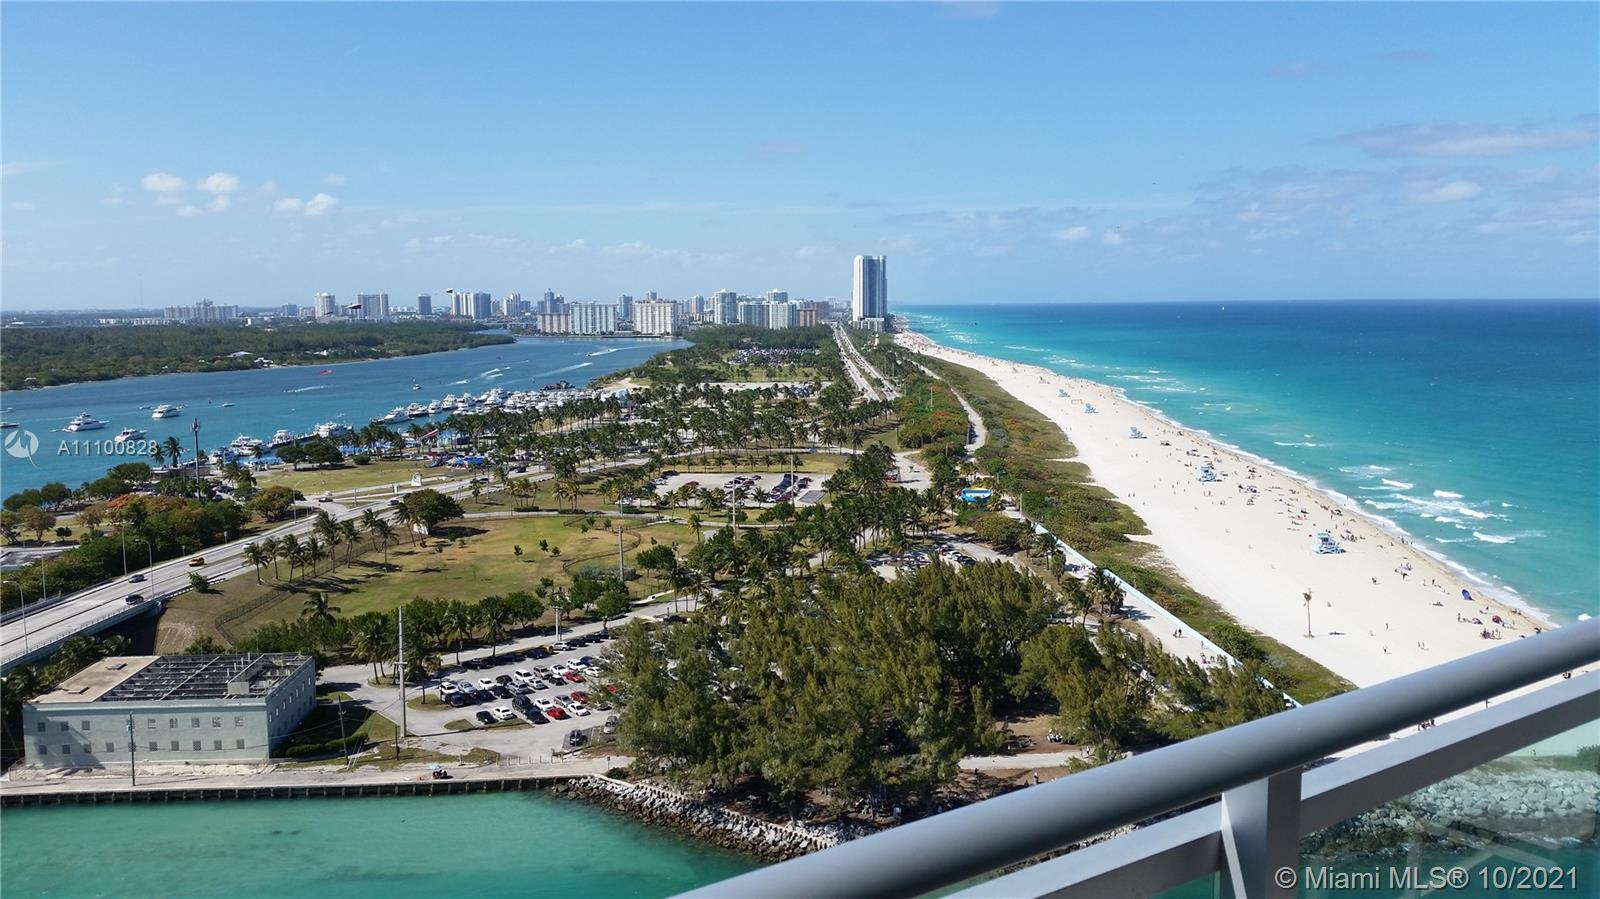 Condo For Rent at 10295 COLLINS AVE RESDNTA,ONE BAL HARBOUR